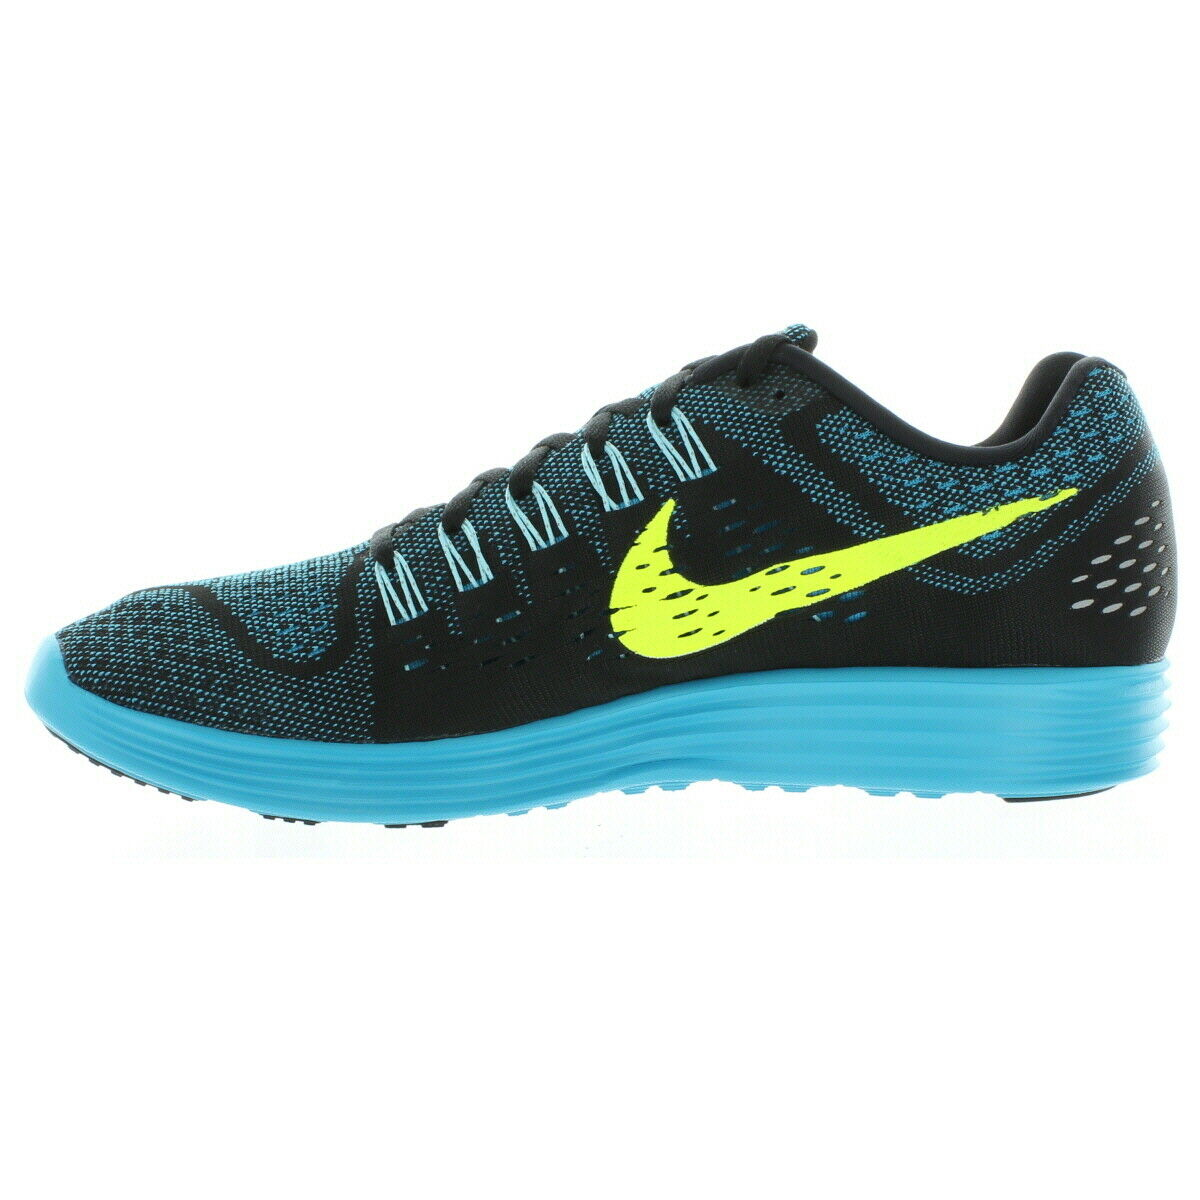 Nike Mens blueee Lagoon Volt Lunartempo Running shoes Size 13 Medium (D, M)